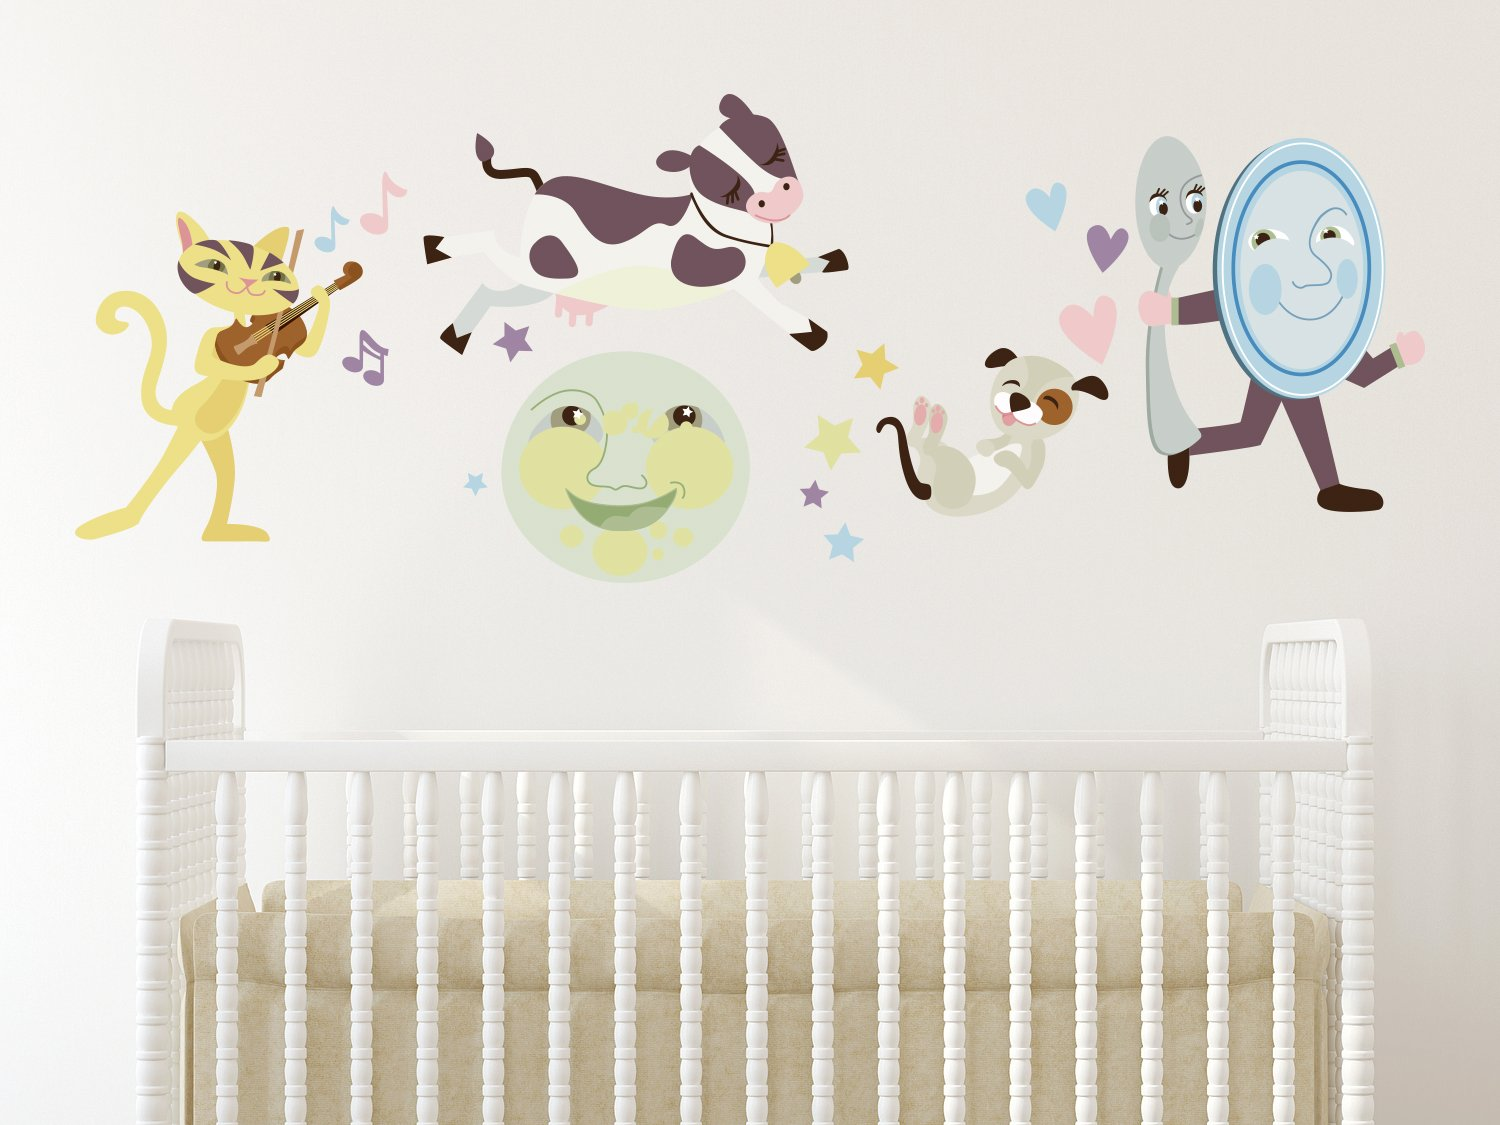 Amazoncom Sunny Decals Nursery Rhyme Fabric Wall Decal Home - Wall decals for nursery